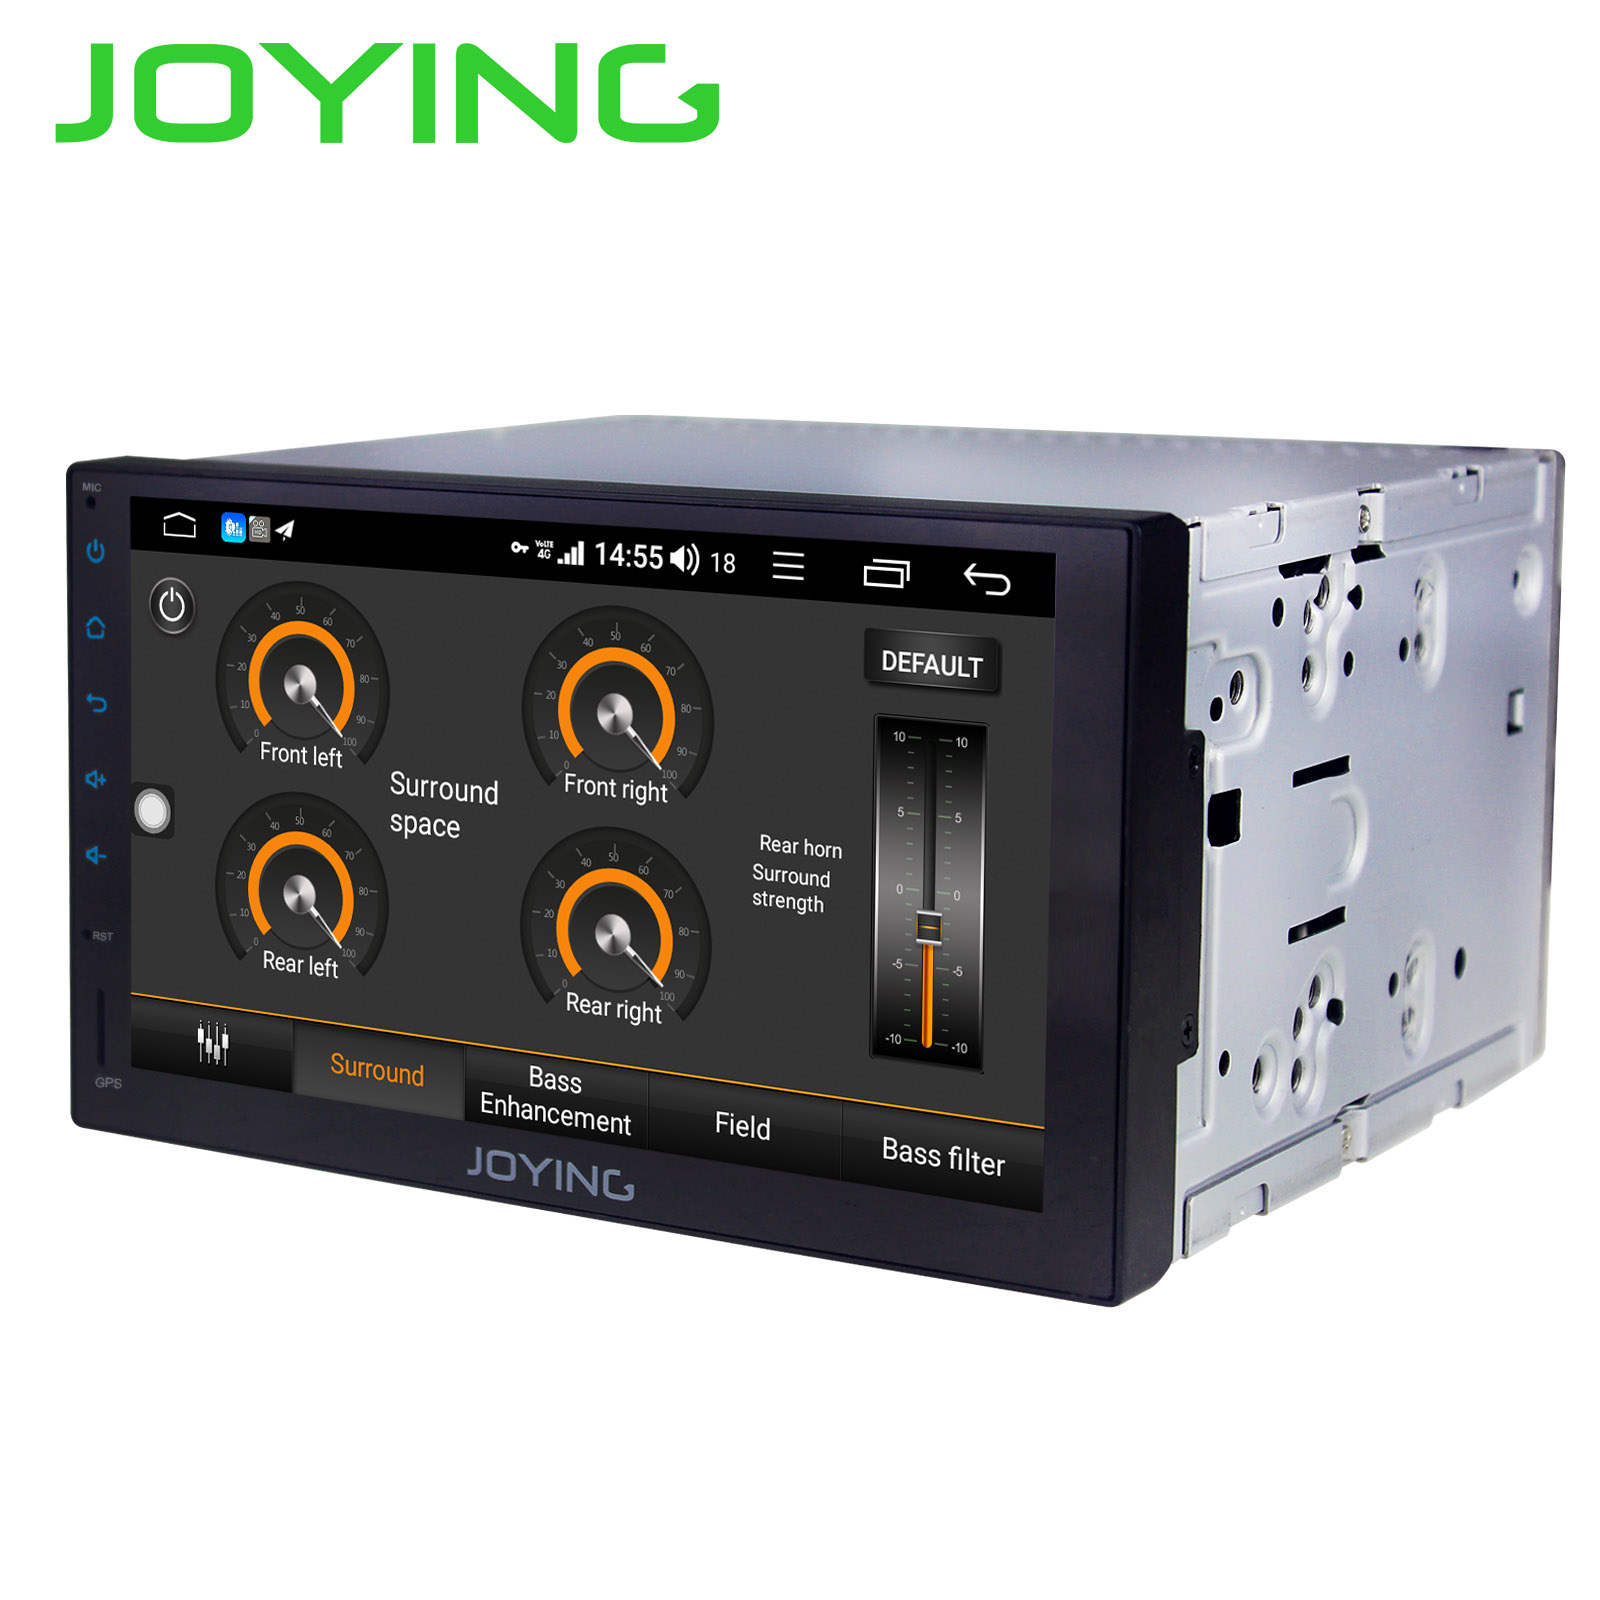 JOYING 2 din car radio player Octa Core 4GB+64GB Android 8 1 Support 4G DSP  GPS universal stereo head unit SWC multimedia player